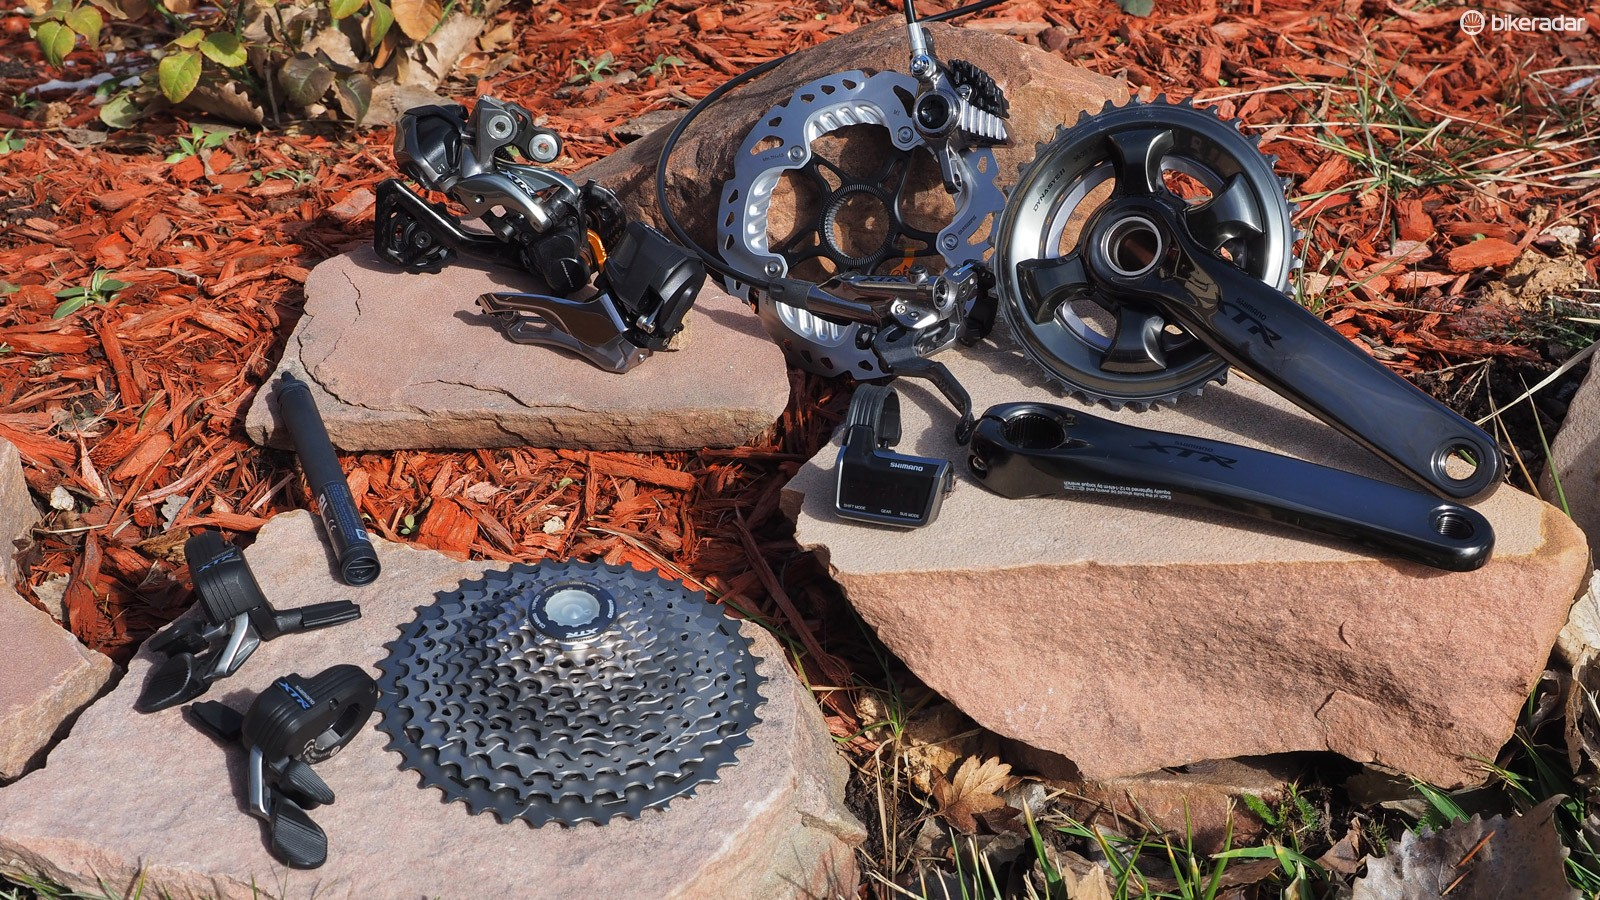 Shimano genuinely raised the bar with its new XTR Di2 electronic mountain bike drivetrain. Even its outstanding performance can't fully justify its exorbitant cost, though